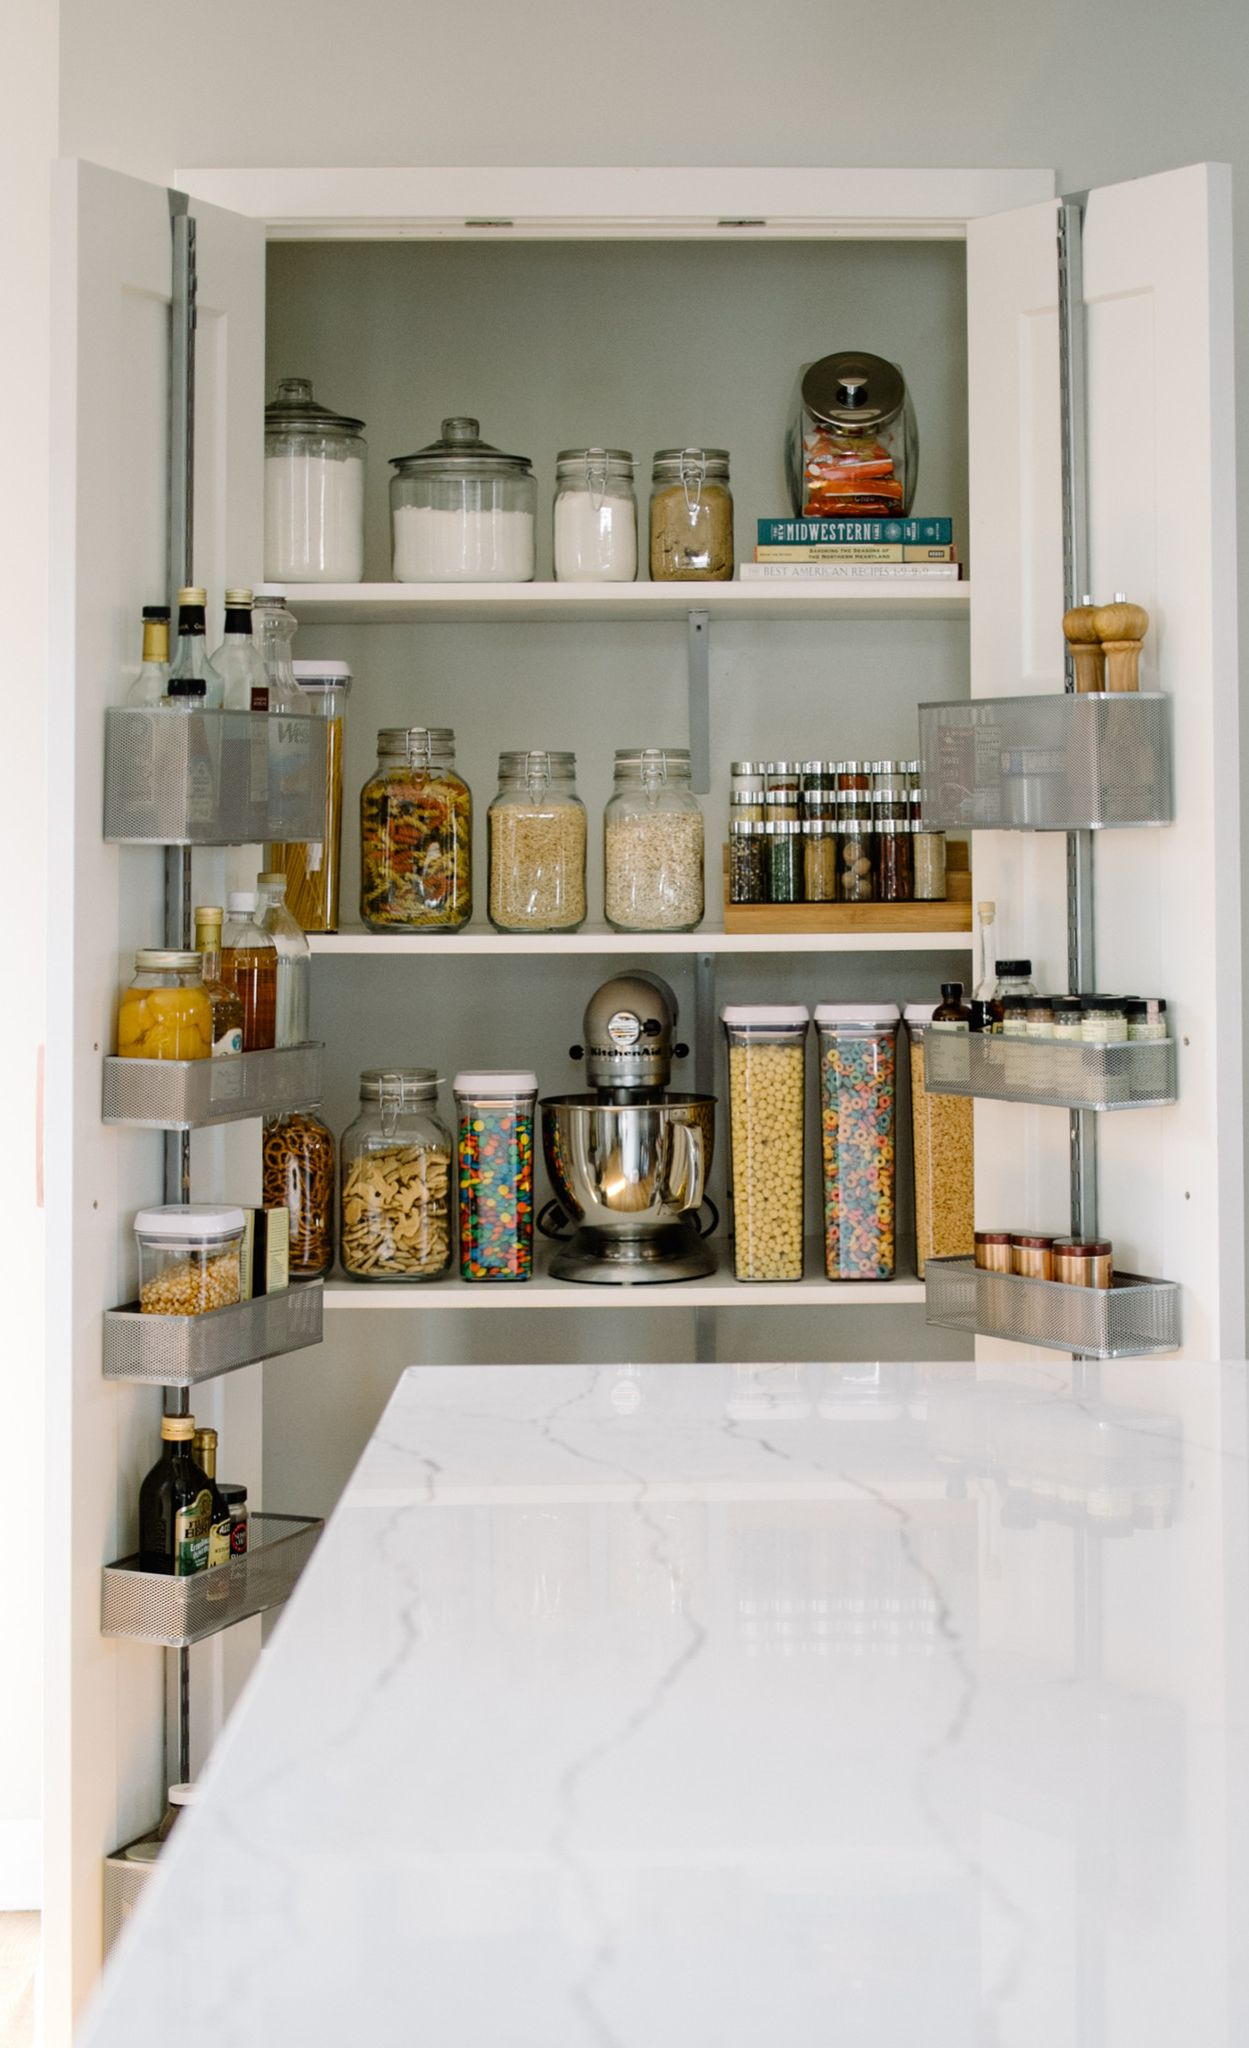 An organized kitchen pantry in a kitchen featuring Cambria Ella countertops.